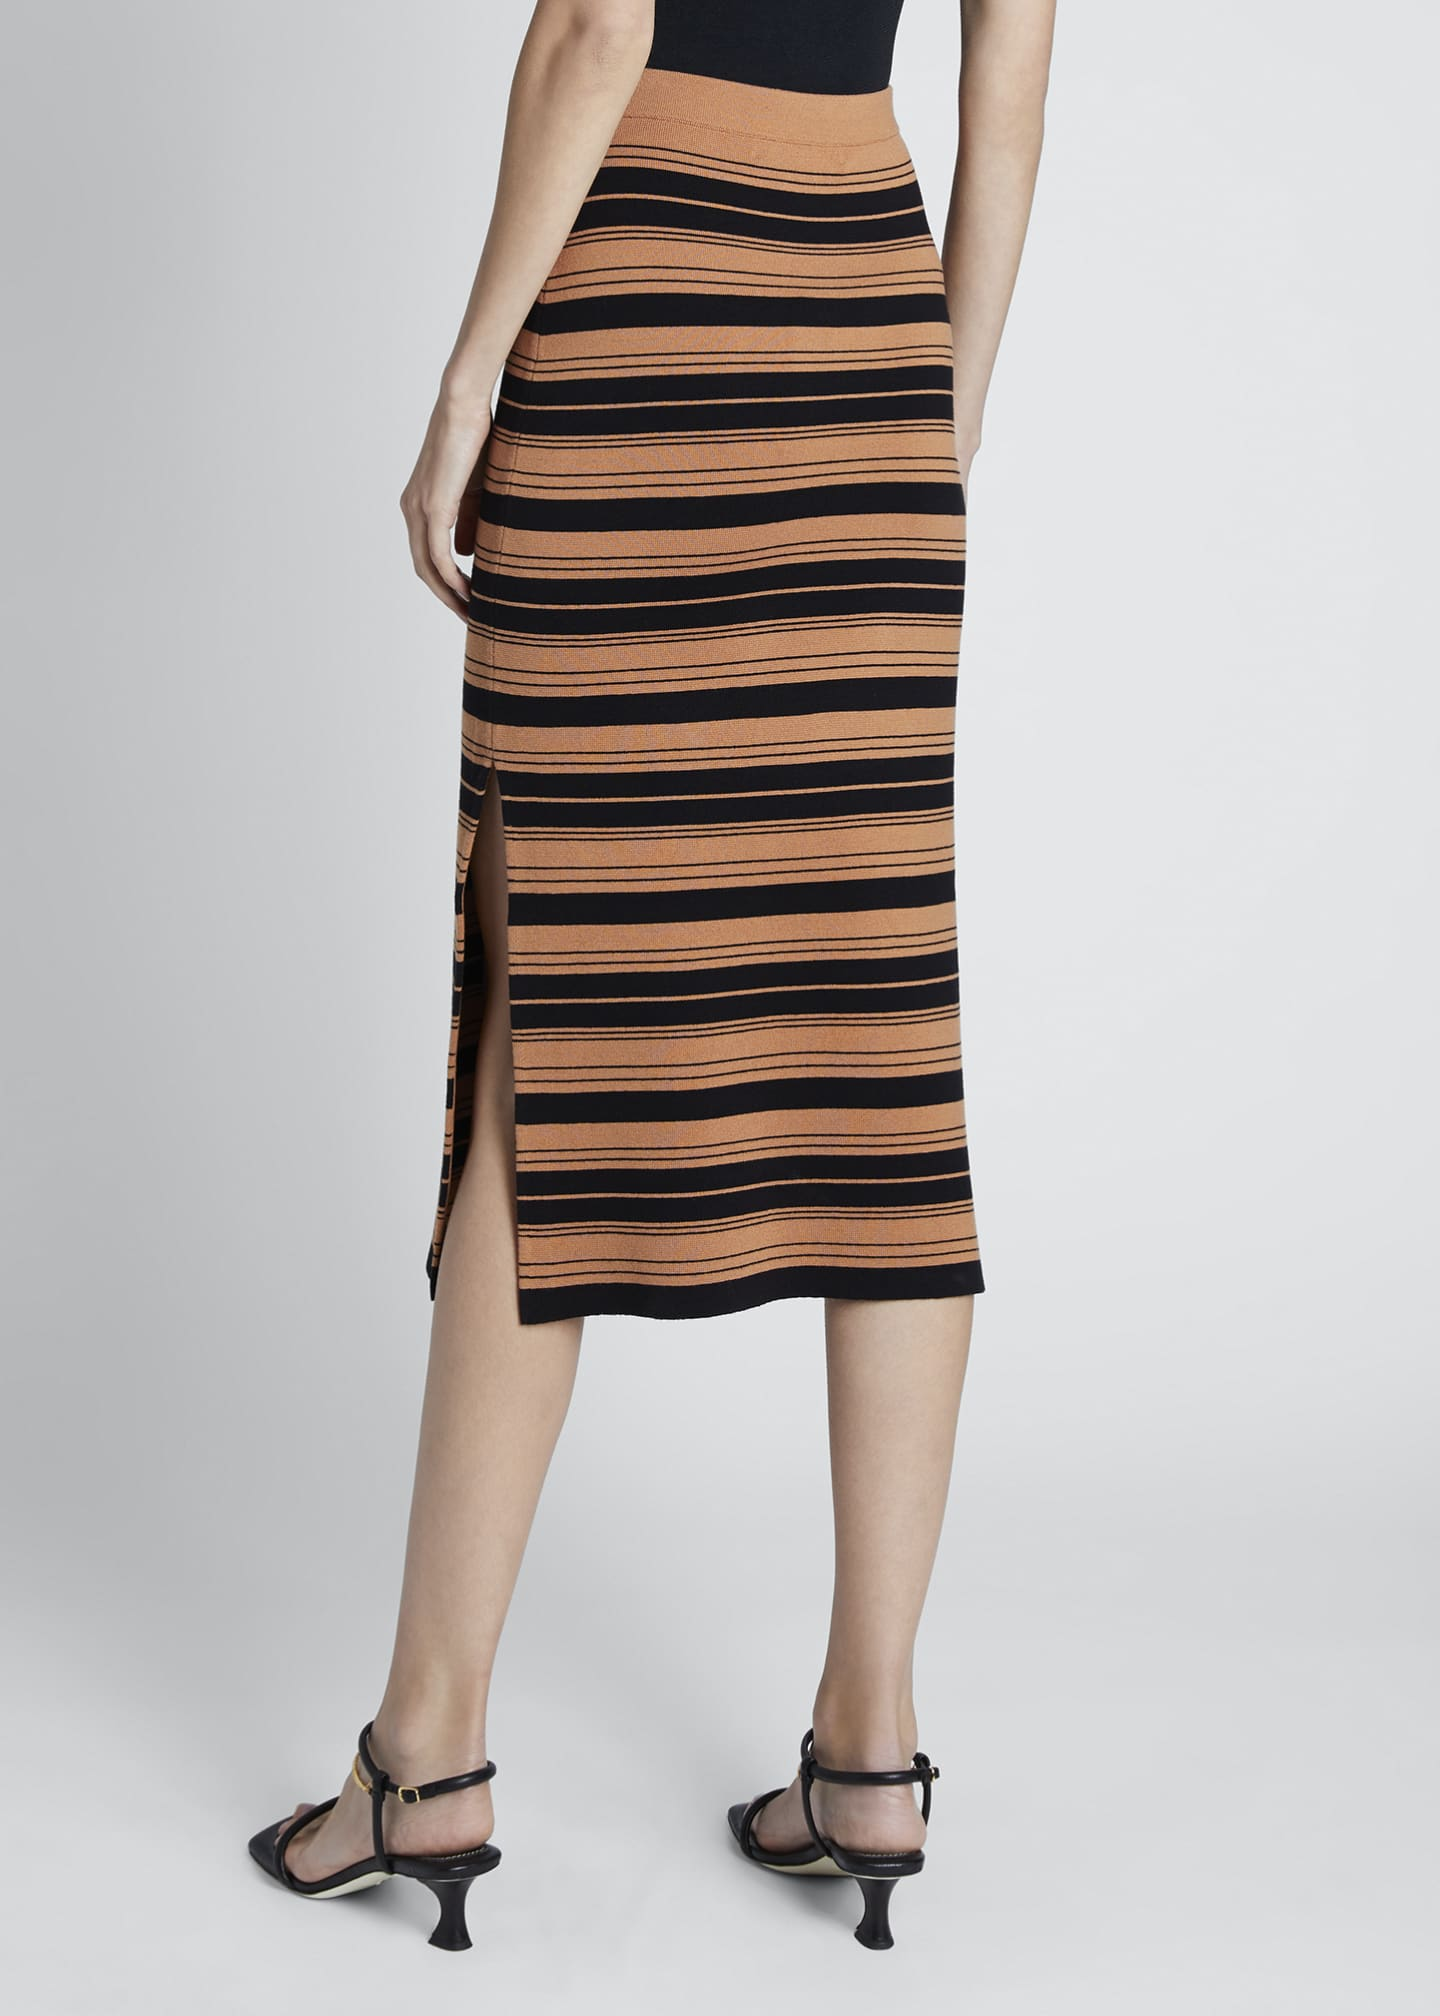 Image 2 of 3: Compact Striped Midi Skirt